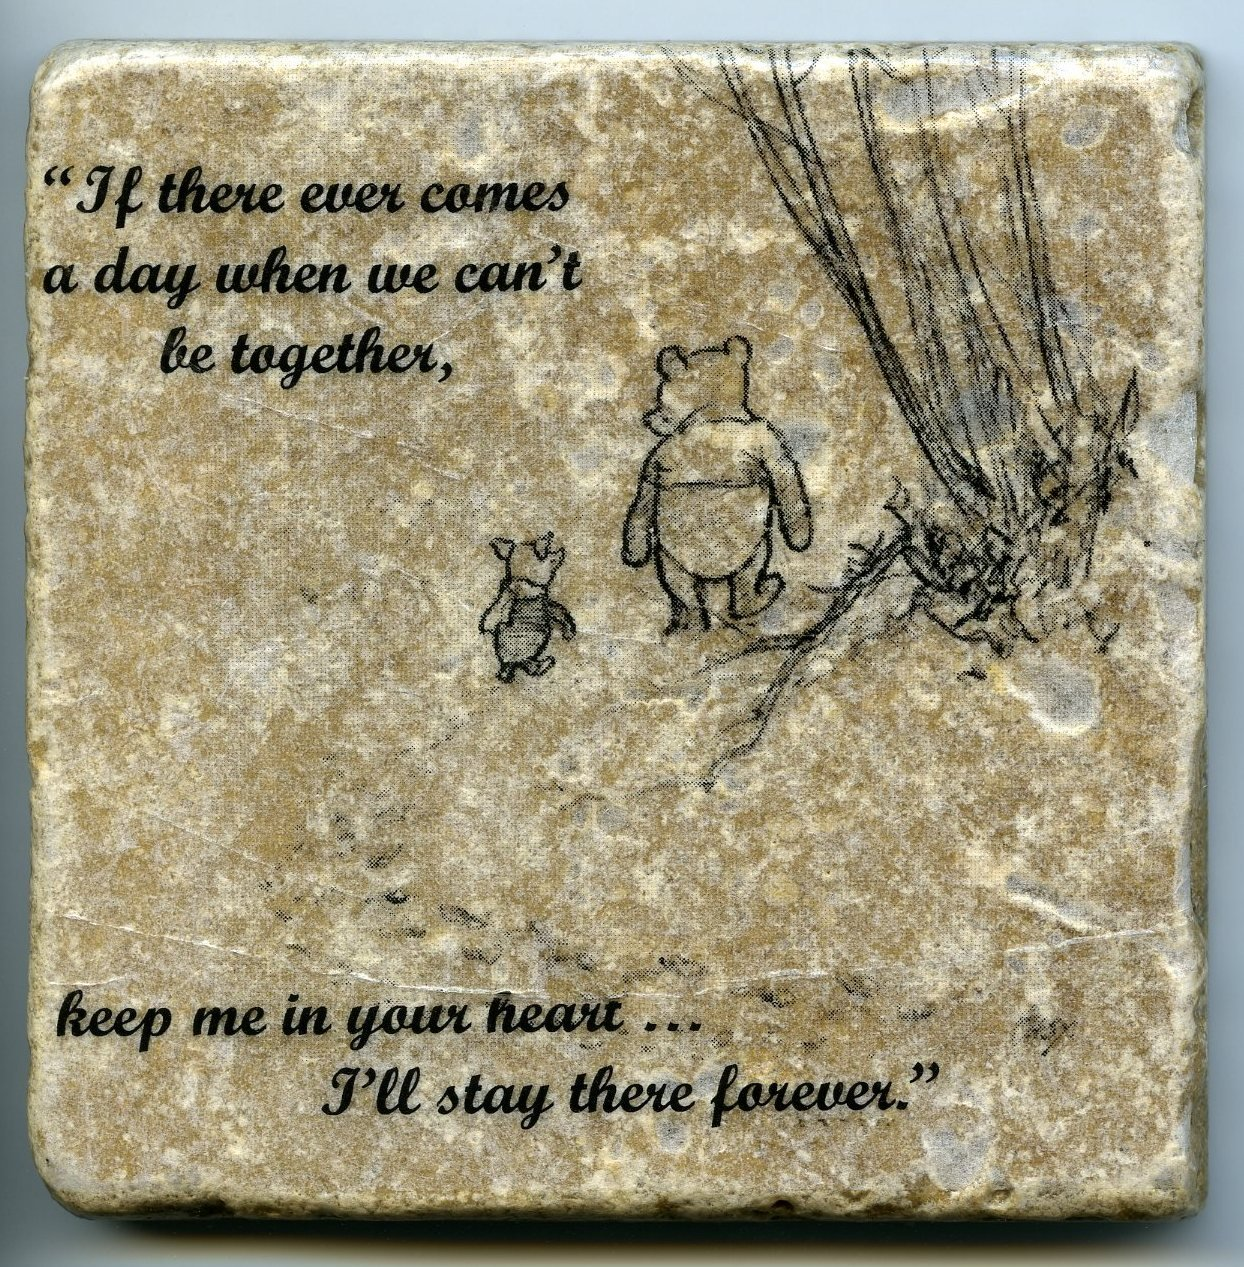 Winnie the pooh quote wall art tumbled tile coaster natural stone piglet 4 x 4 - Forever tile and stone ...